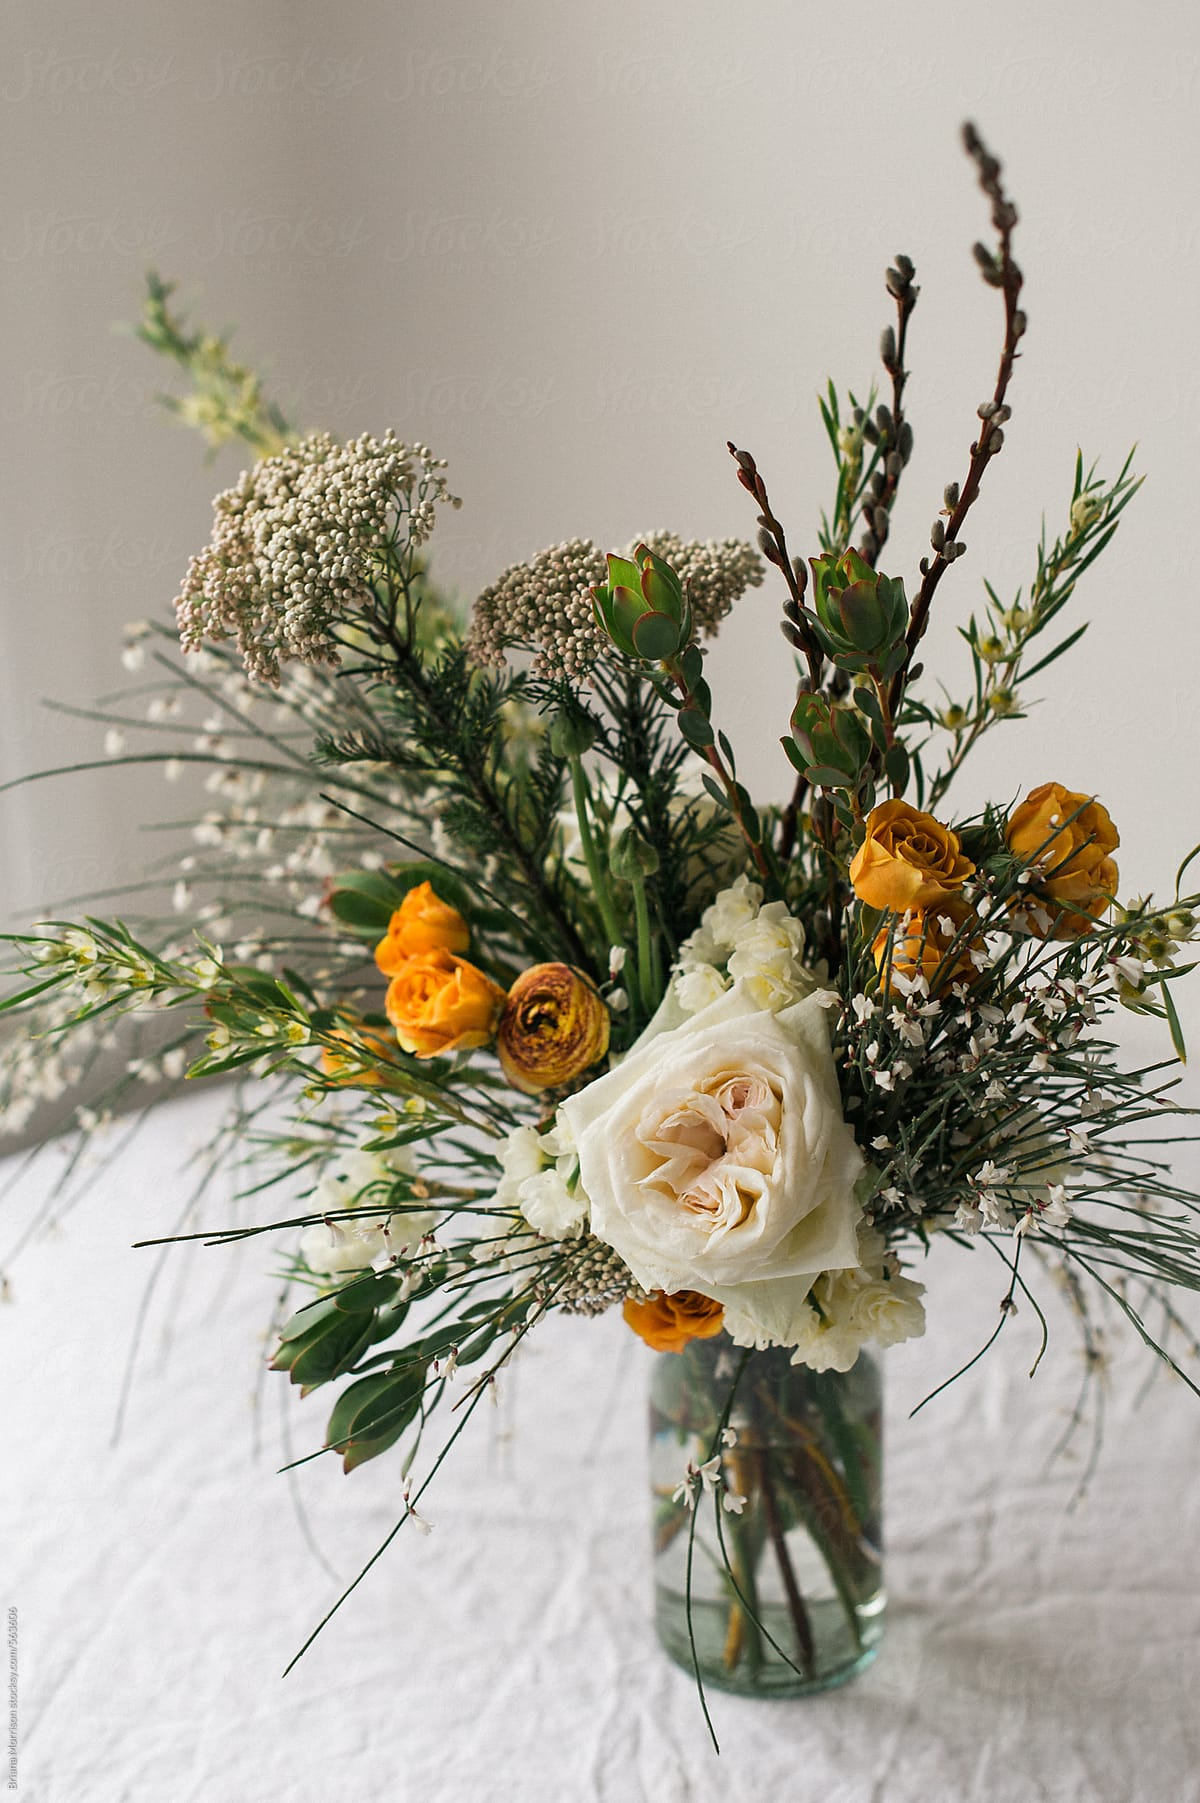 Spring Floral Arrangement With White Green And Orange Foliage